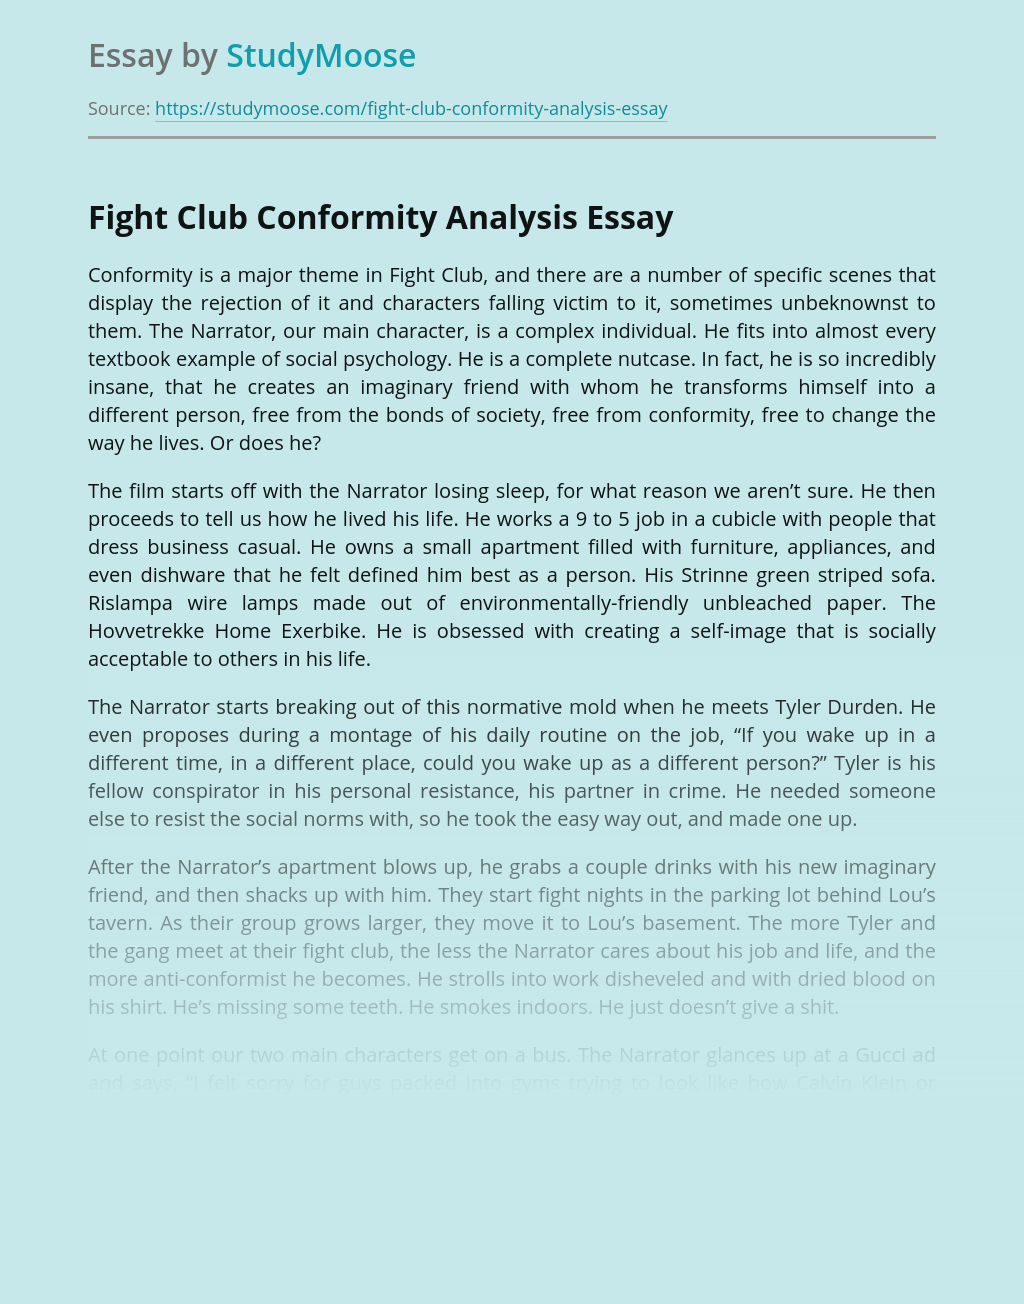 Conformity Is A Major Theme in Fight Club